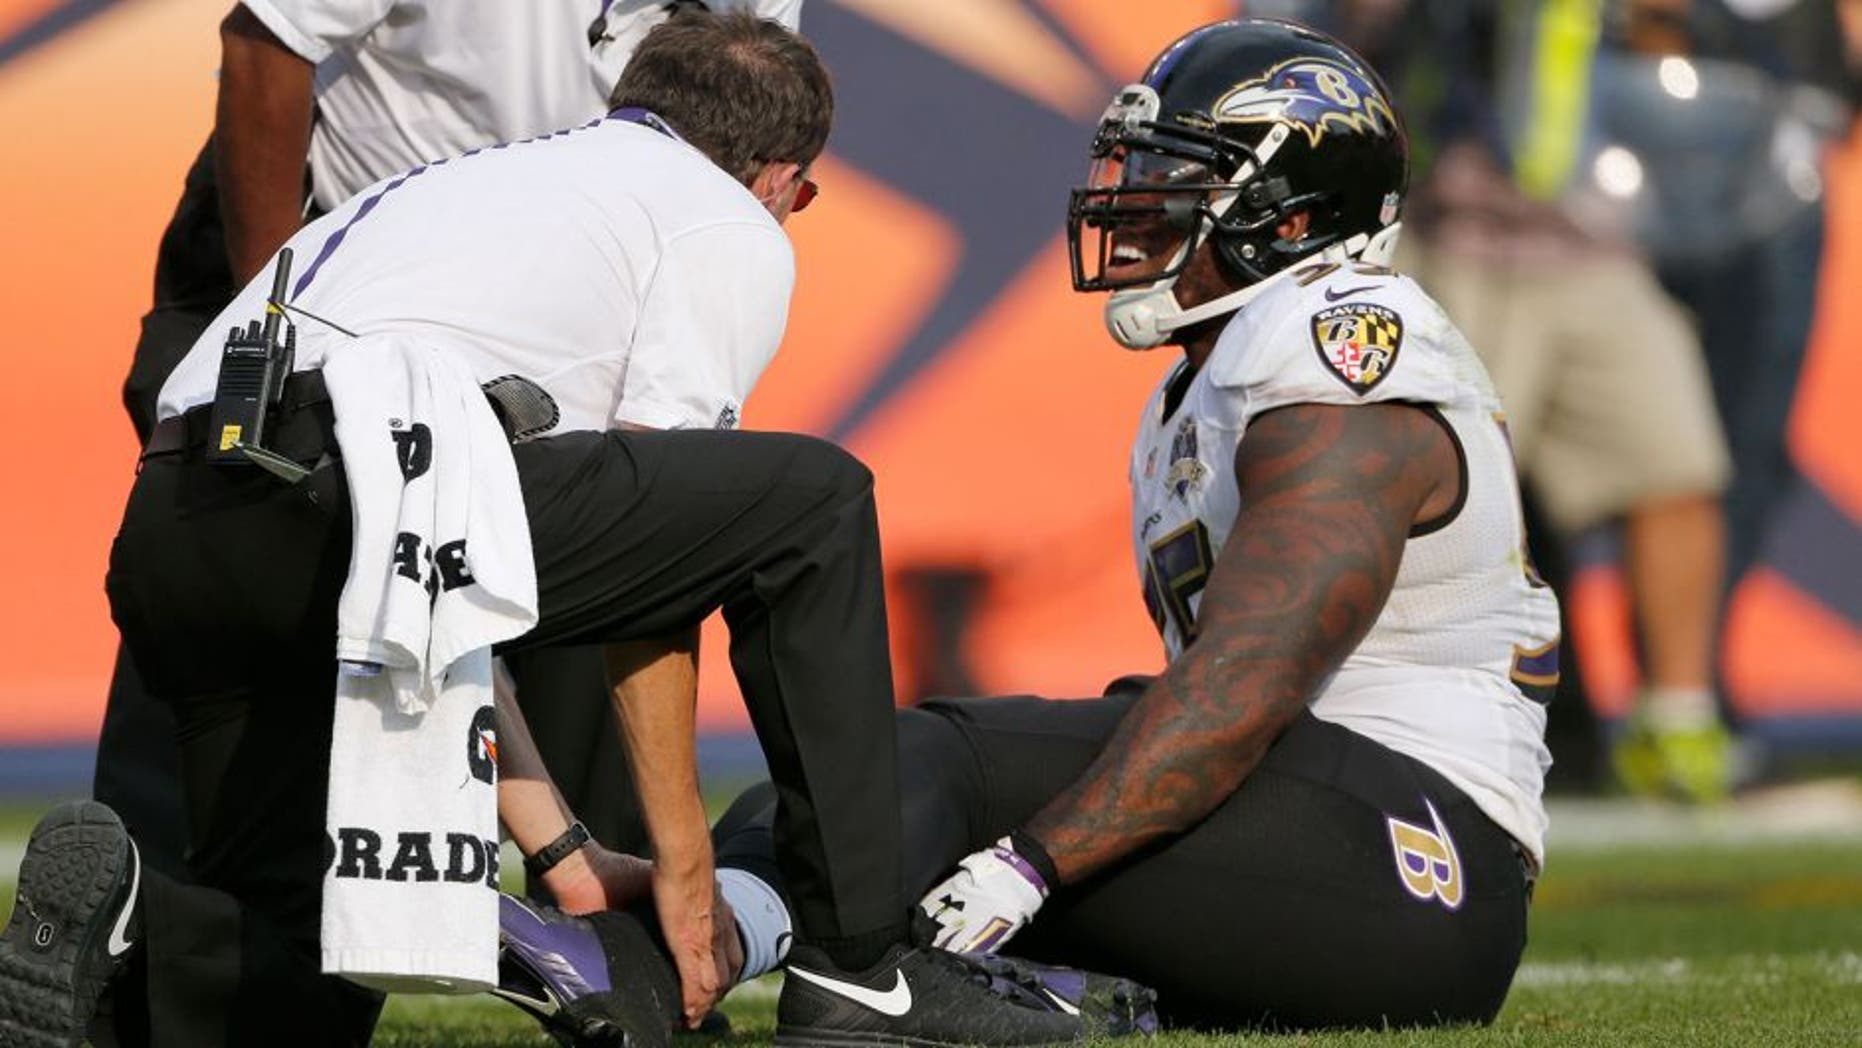 Baltimore Ravens outside linebacker Terrell Suggs is treated on the field during the second half of an NFL football game against the Denver Broncos Sunday, Sept. 13, 2015, in Denver. (AP Photo/Jack Dempsey)